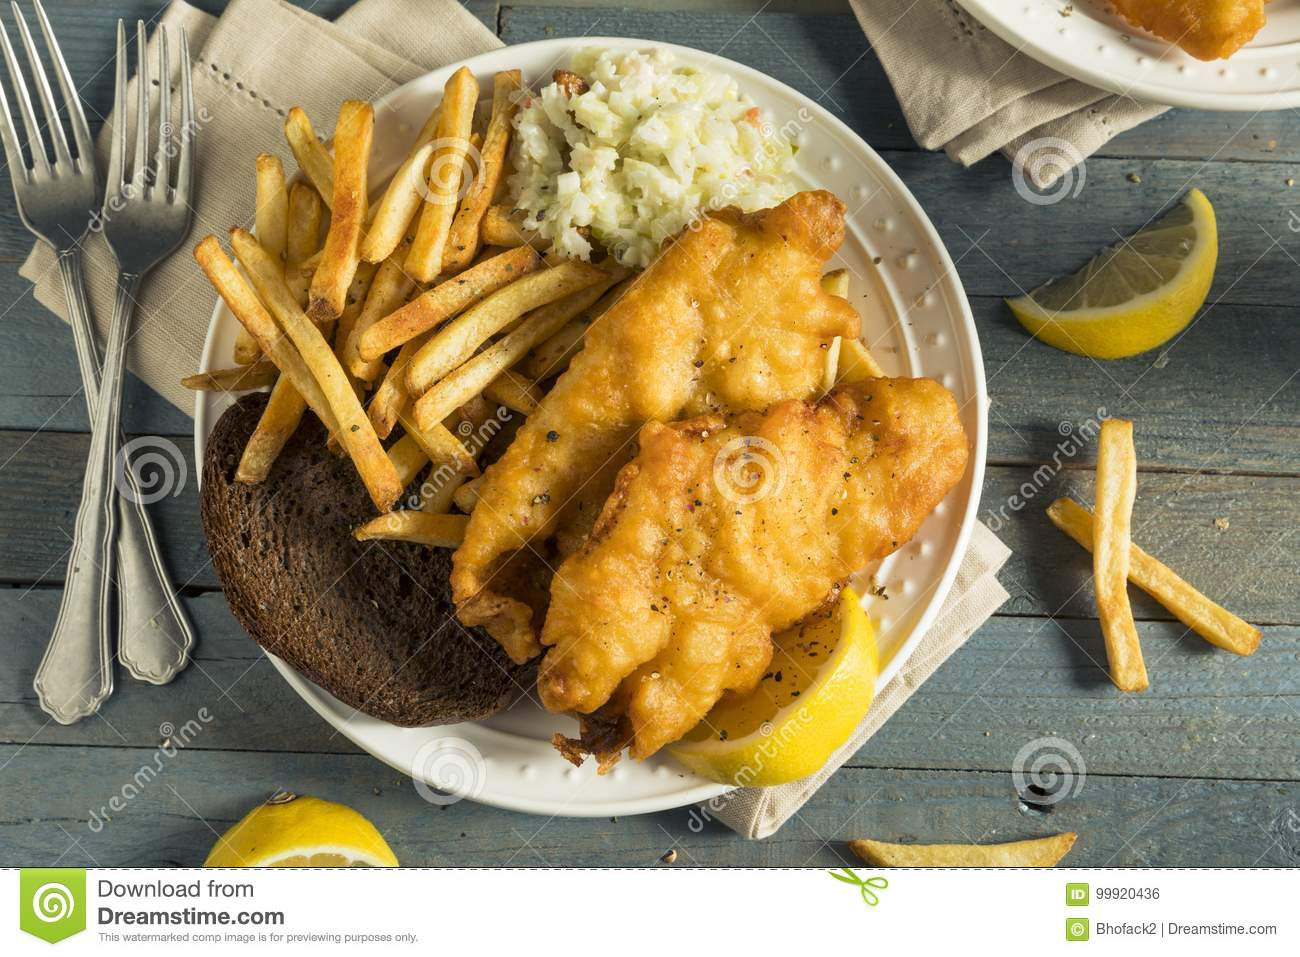 Fish fry stock photos royalty free images dreamstime for Homemade fish fry